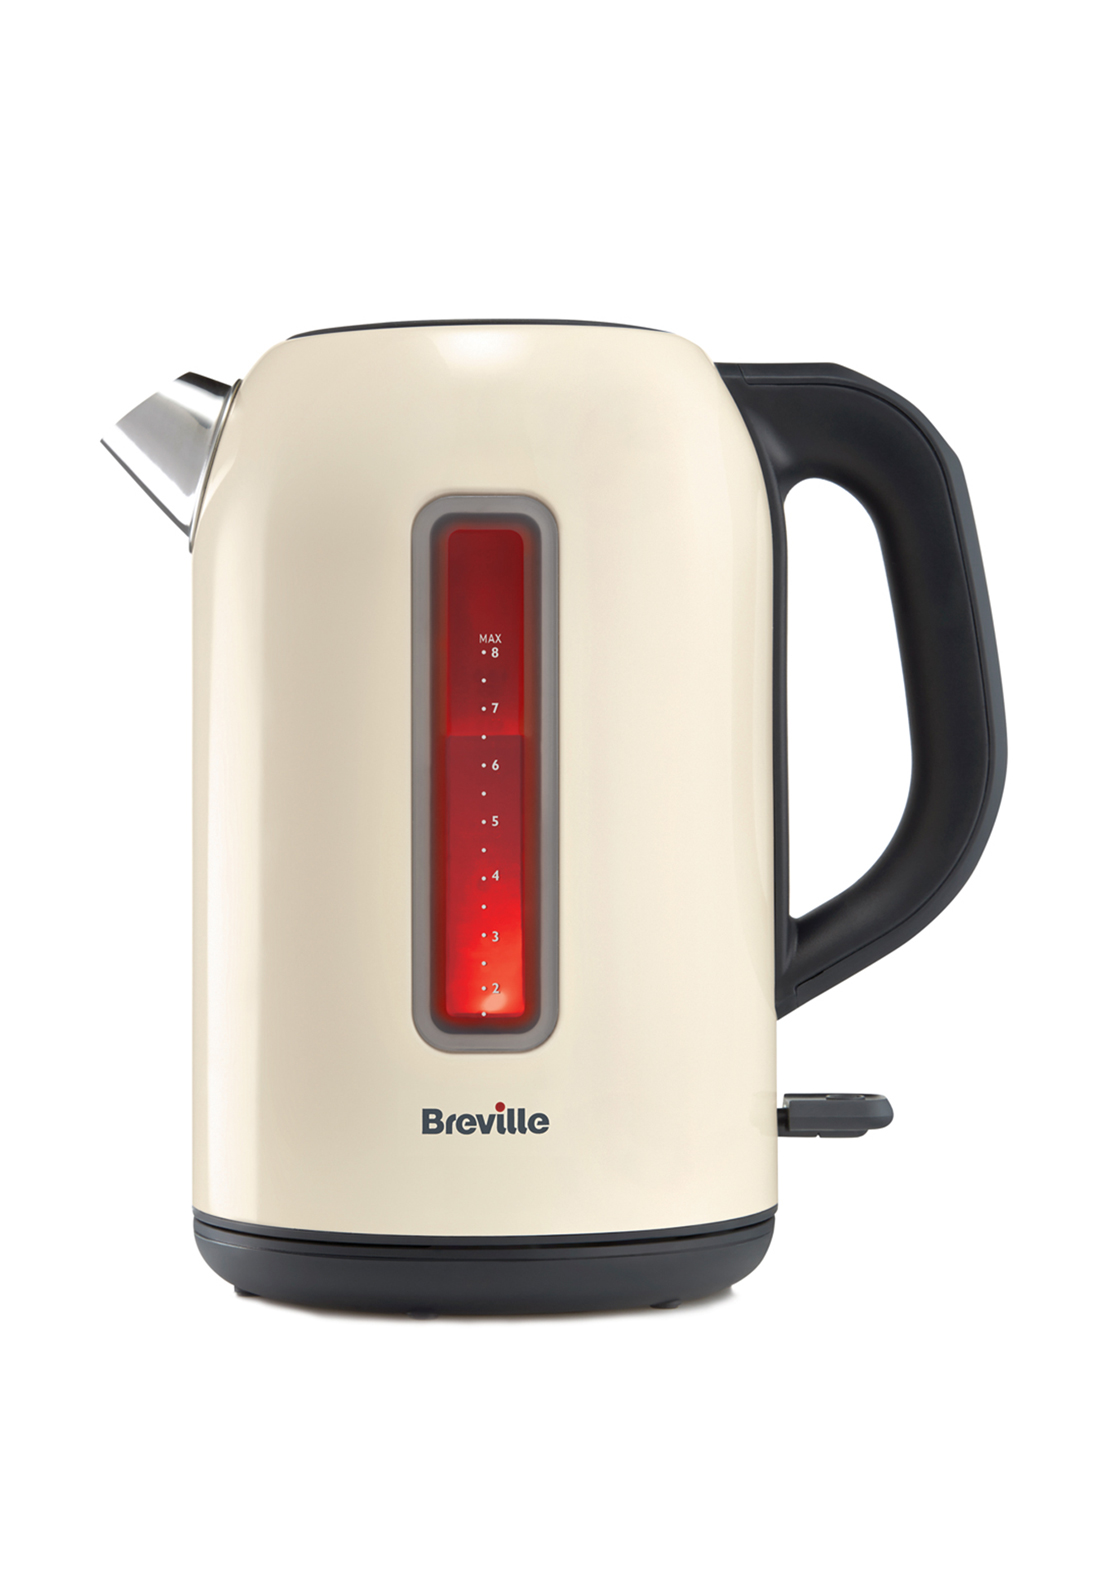 Breville 1.7L Jug Kettle Cream